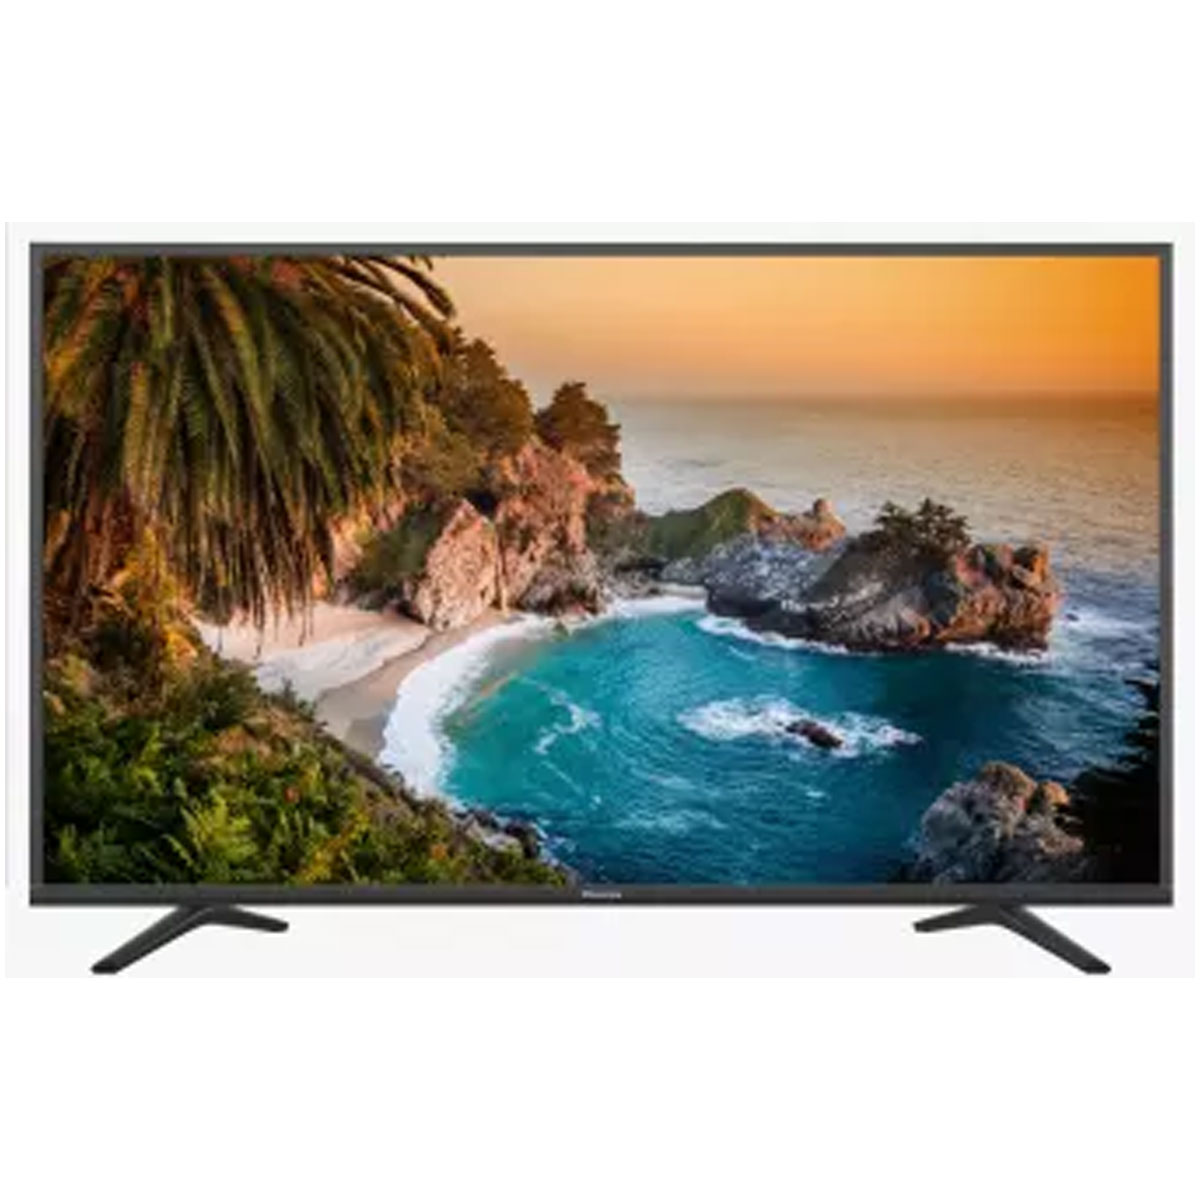 Hisense 32 Inch HD LED TV (32E5100EX)